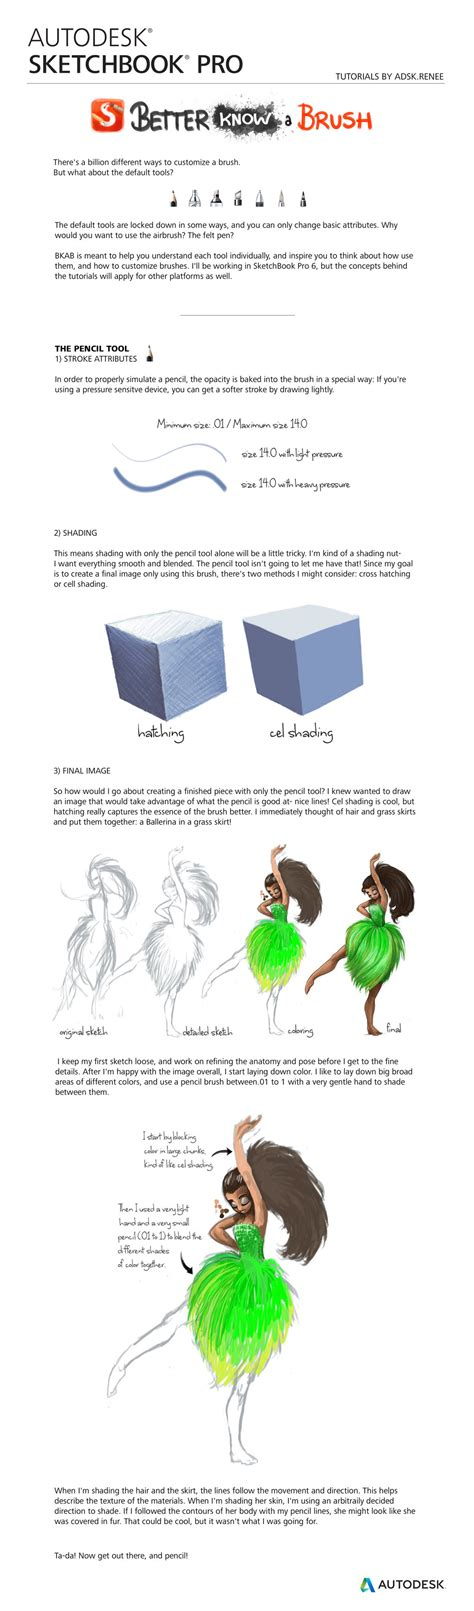 sketchbook pro painting tutorial autodesk sketchbook pro bkab the pencil tutorial by